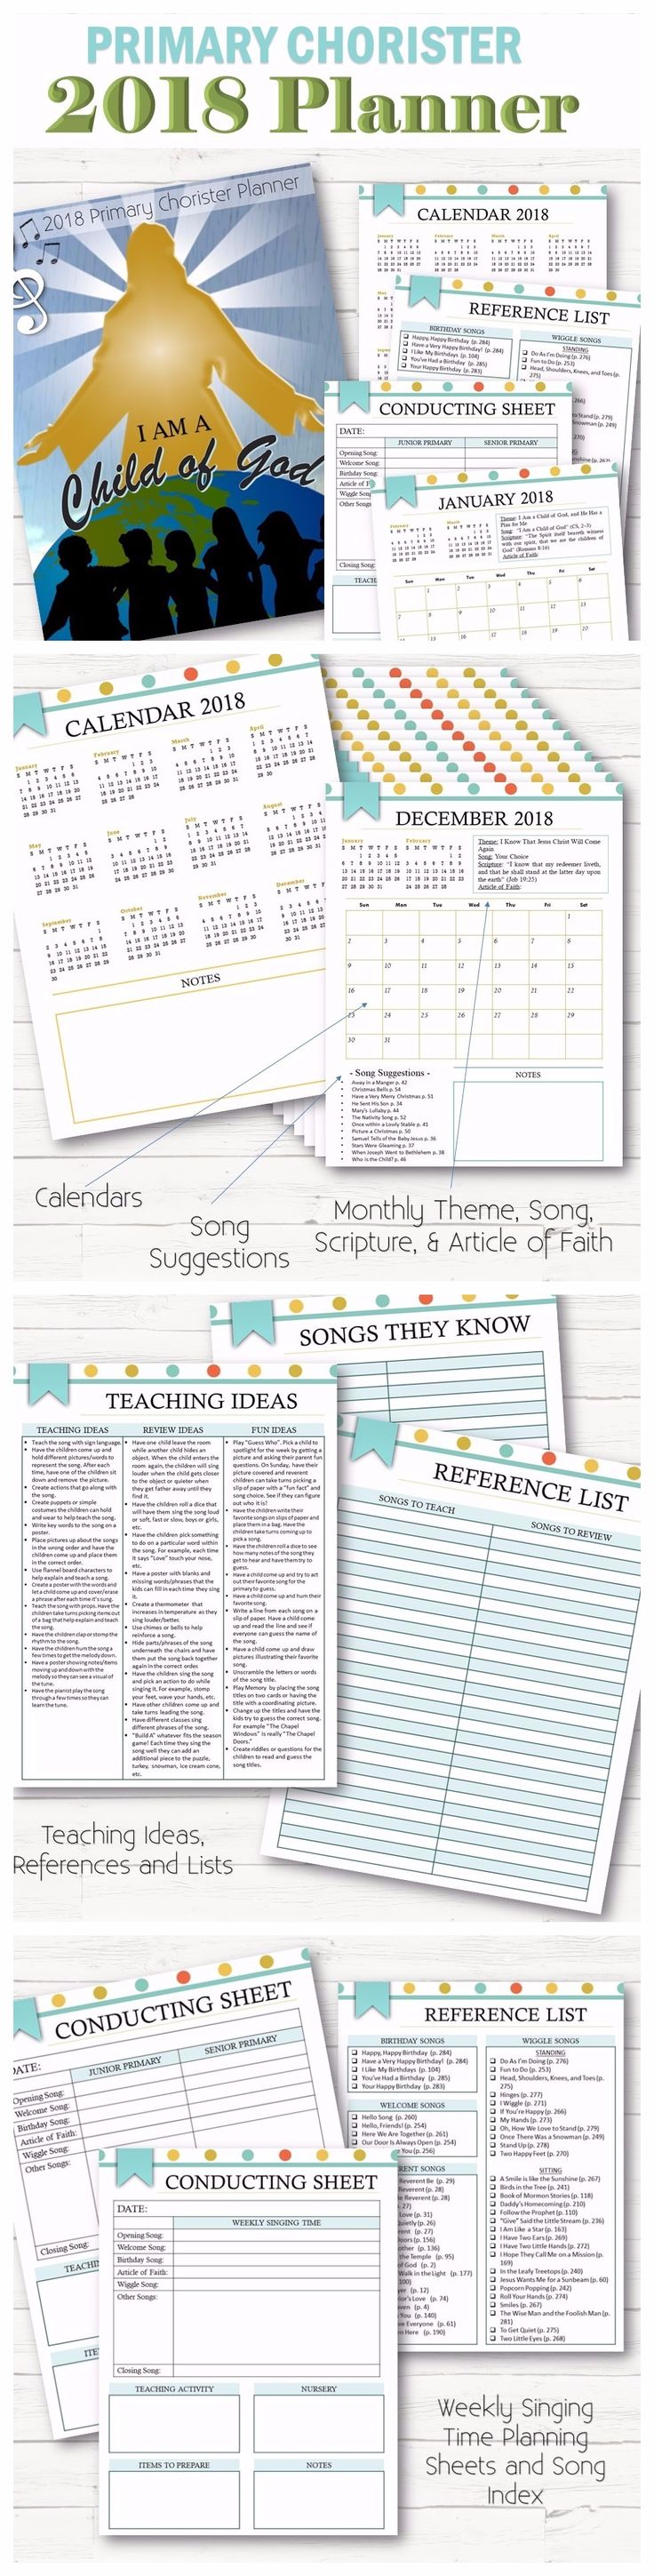 Primary Chorister planning done for you with the 2018 curriculum! An all in one planner that tells you the monthly song, scripture, theme, and Article of Faith, along with song suggestions by month, teaching ideas, reference lists, planning pages, etc. Everything in one convenient place! Perfect for Choristers and Subs!